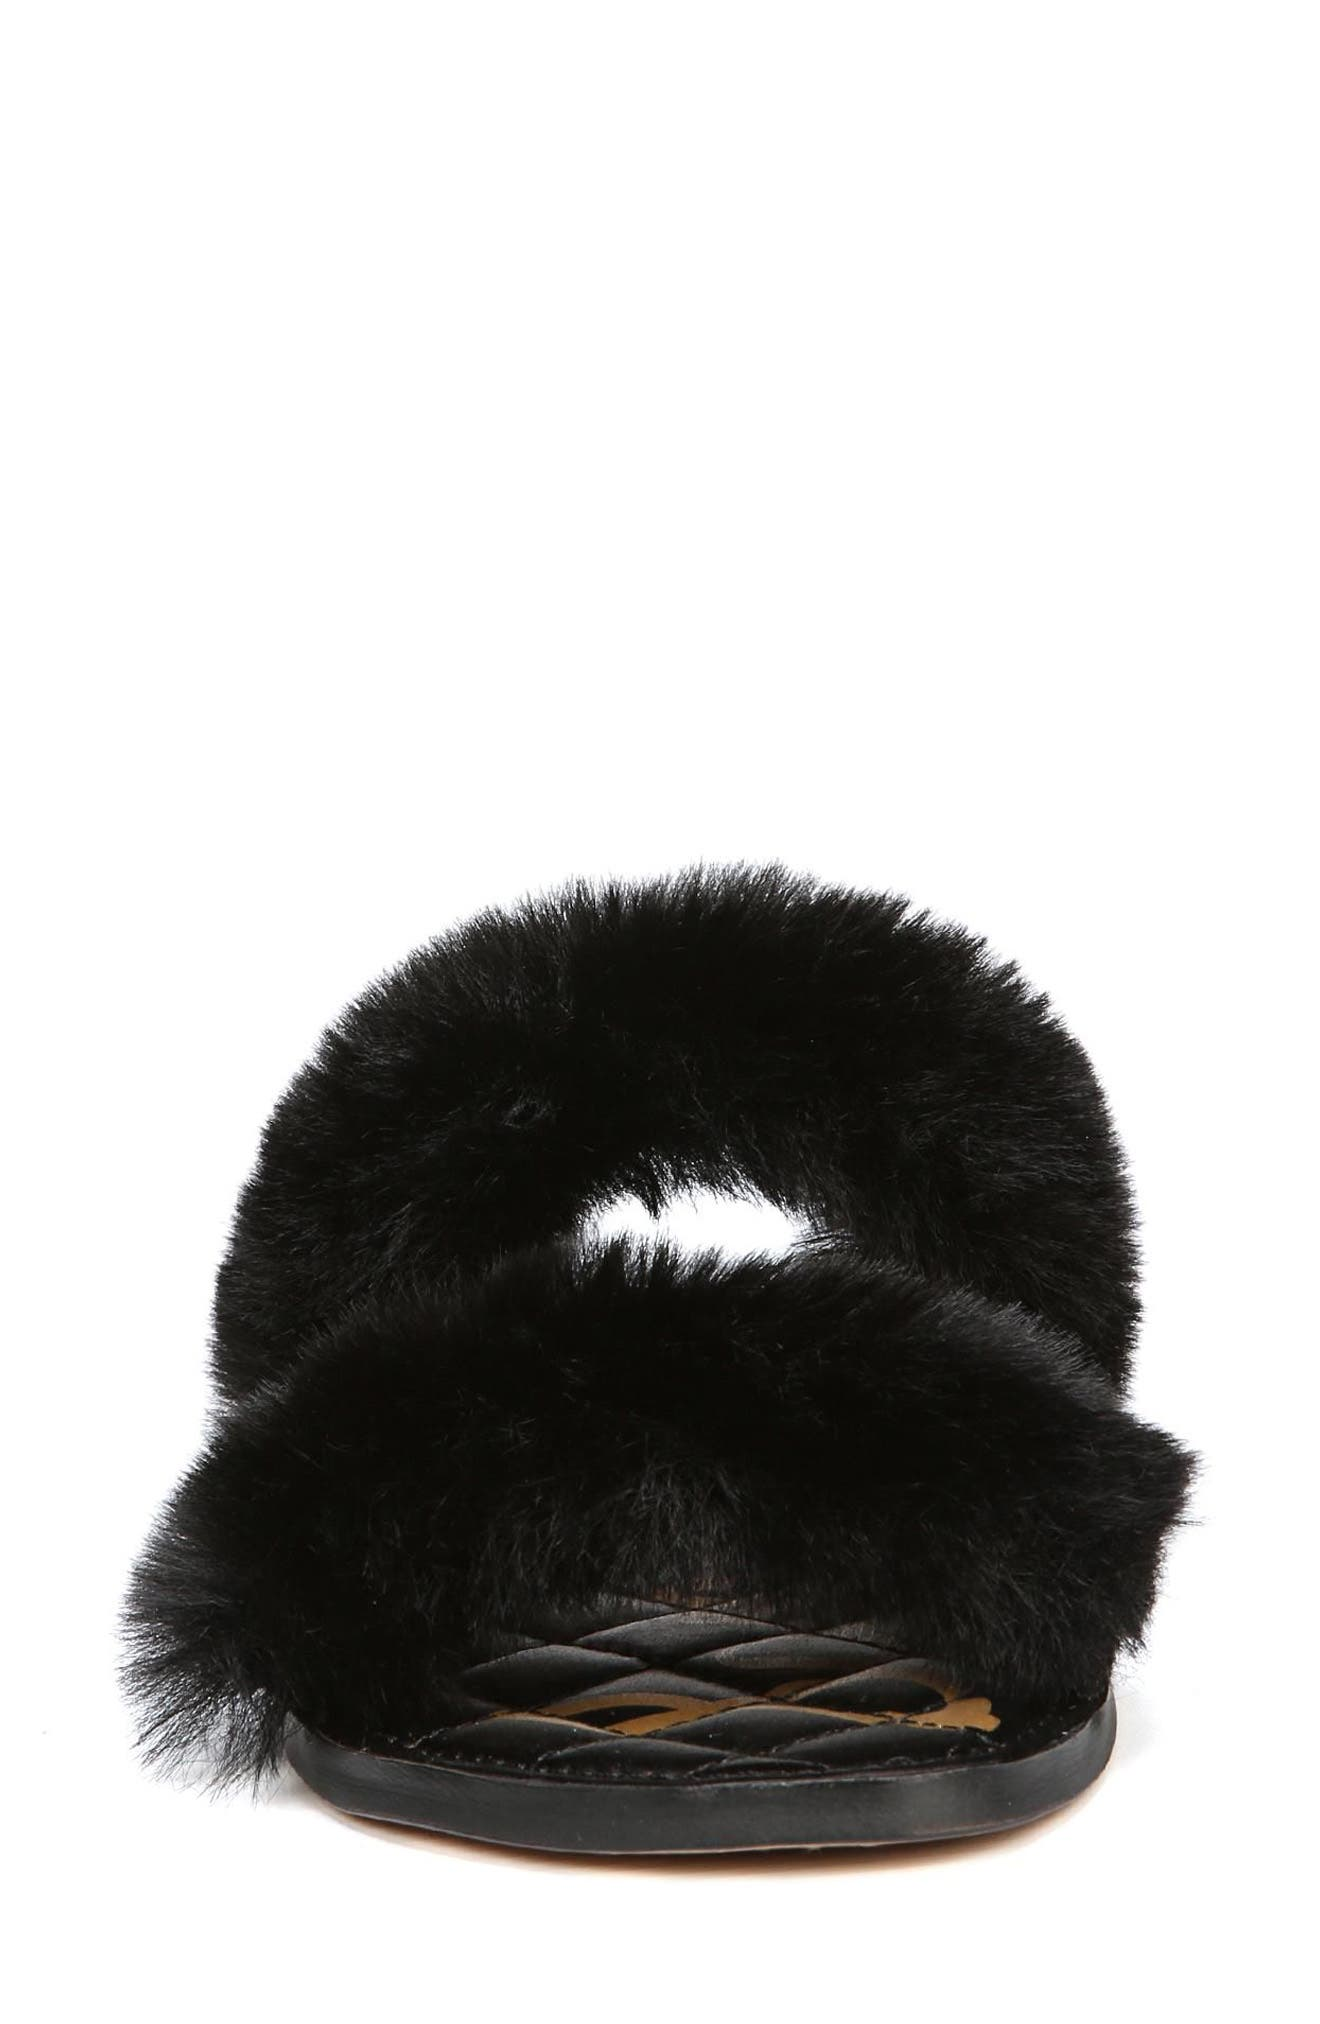 Griselda Faux Fur Slide Sandal,                             Alternate thumbnail 4, color,                             BLACK FAUX FUR